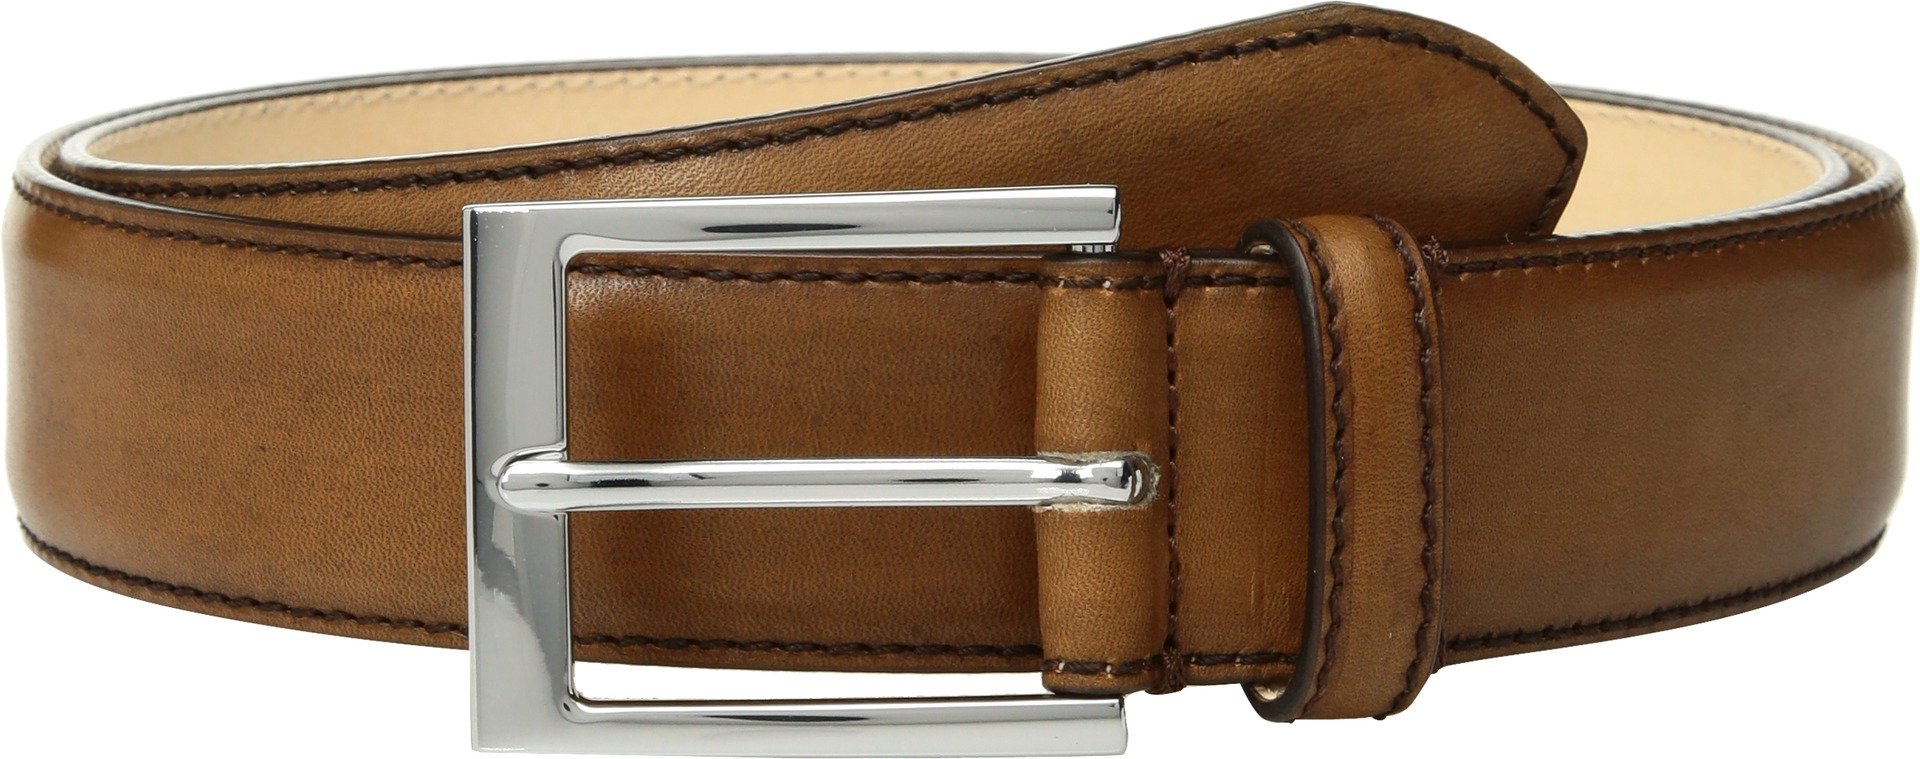 To Boot New York  Men's Belt Cognac 36